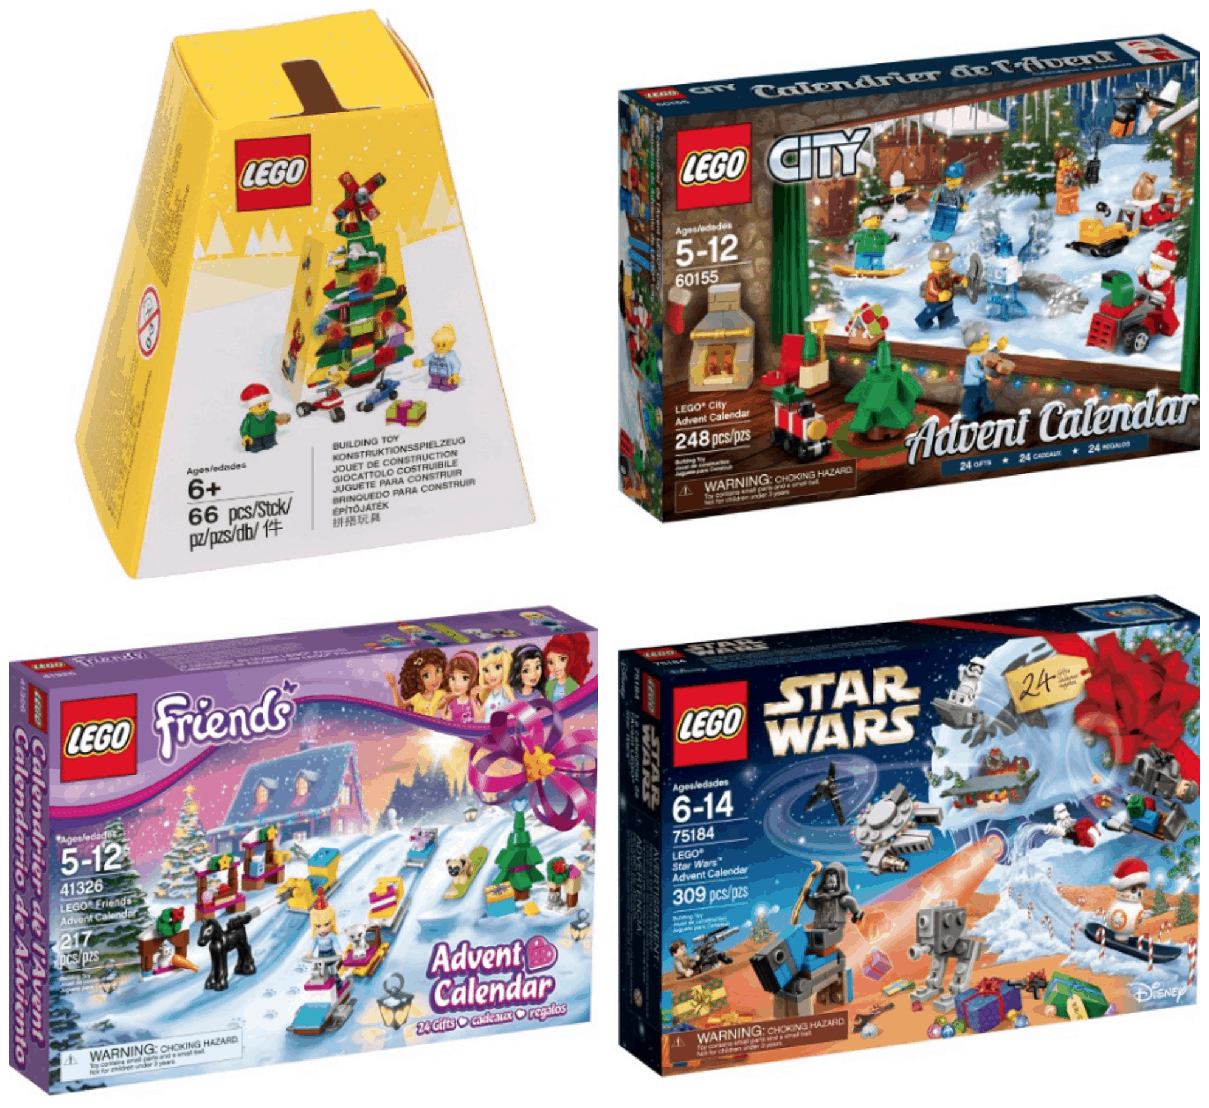 right now at target you can get a free lego creator christmas set 699 value with a 35 lego purchase excludes lego duplo plus shipping is free